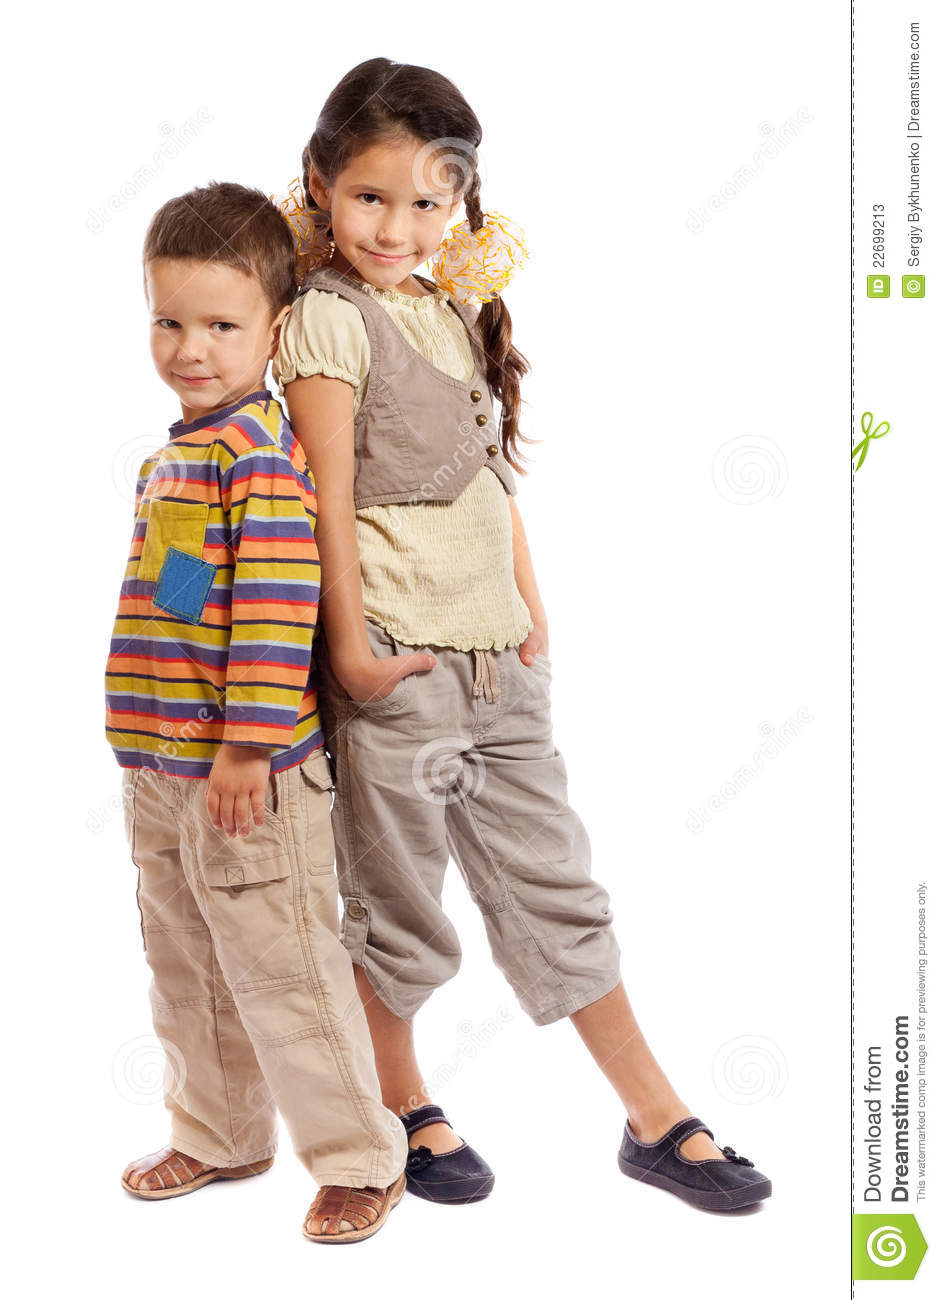 Two Smiling Little Children Standing Together Stock Photos